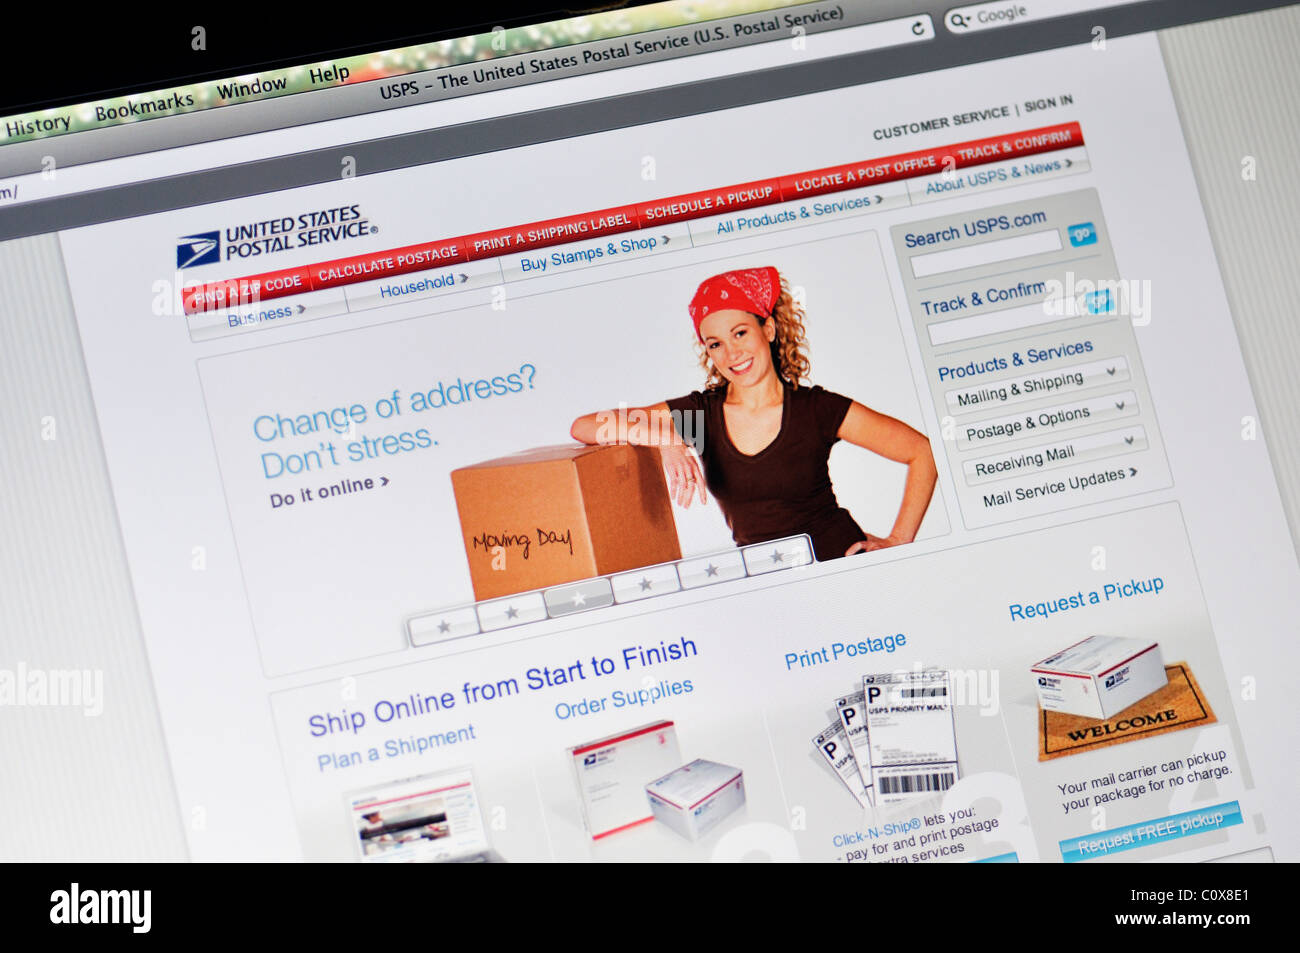 USPS website - US Postal Services - Stock Image